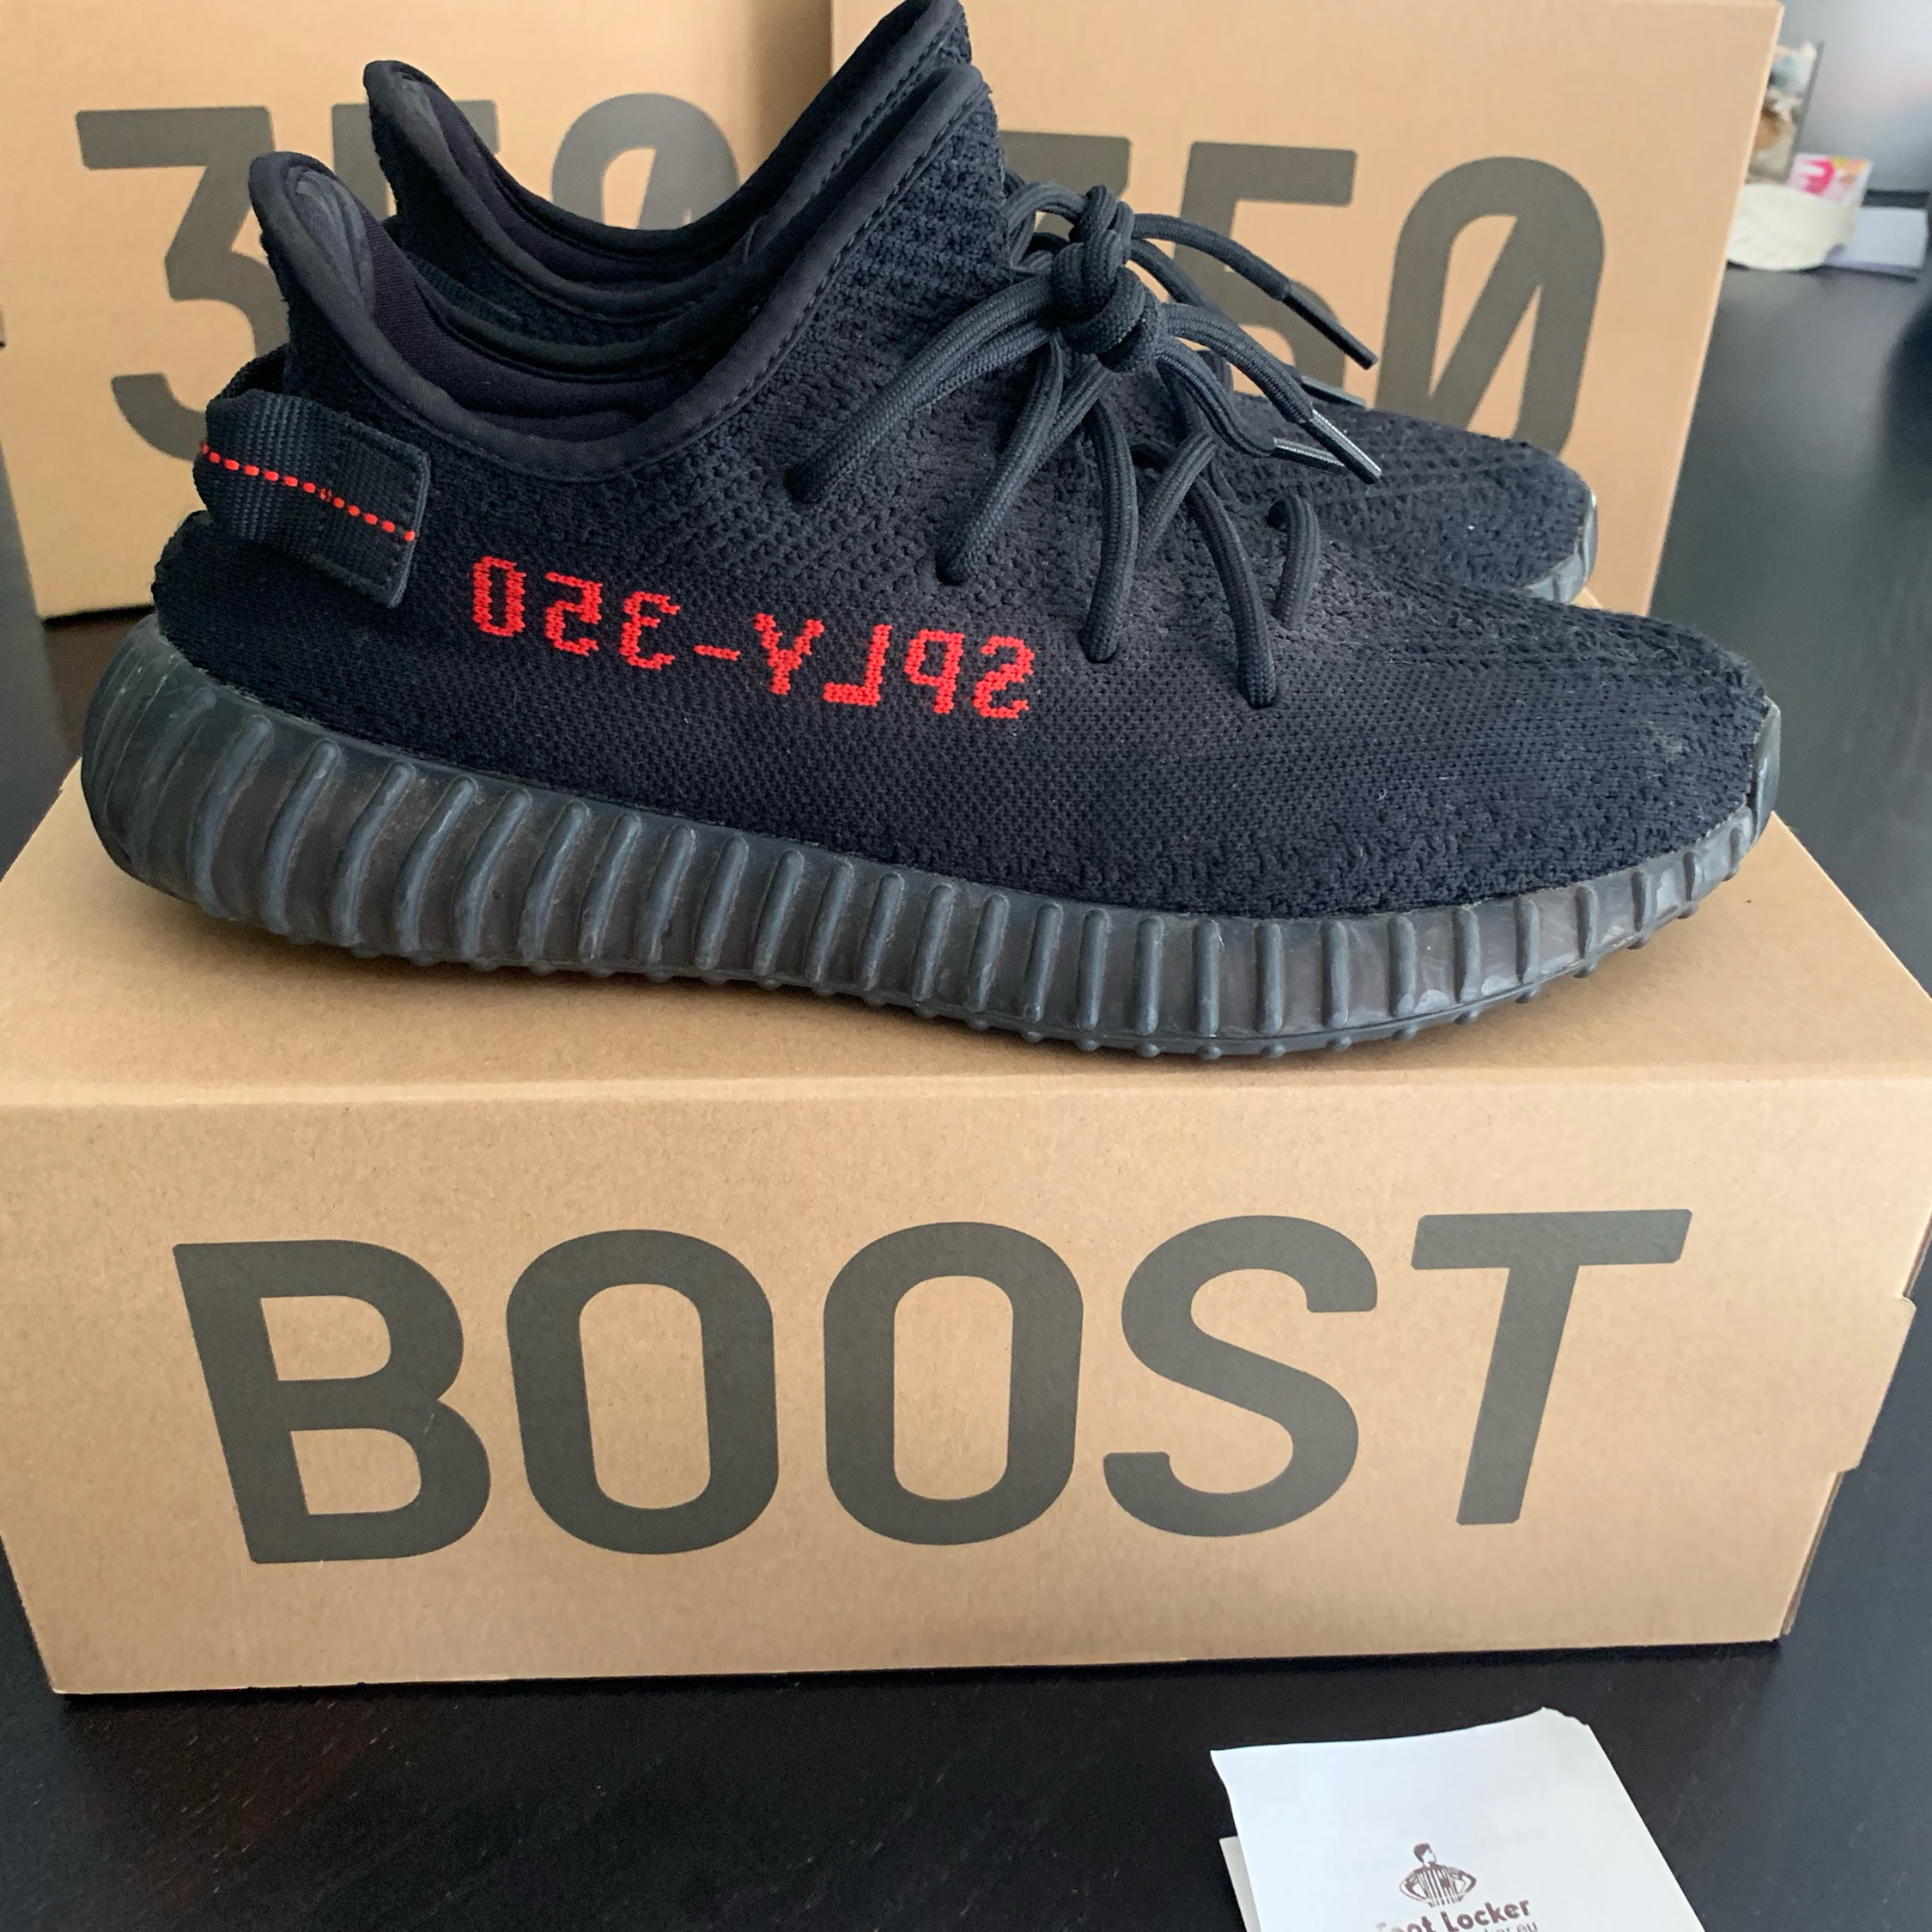 low cost 94504 37ab6 Adidas Yeezy Boost 350 V2 Bred